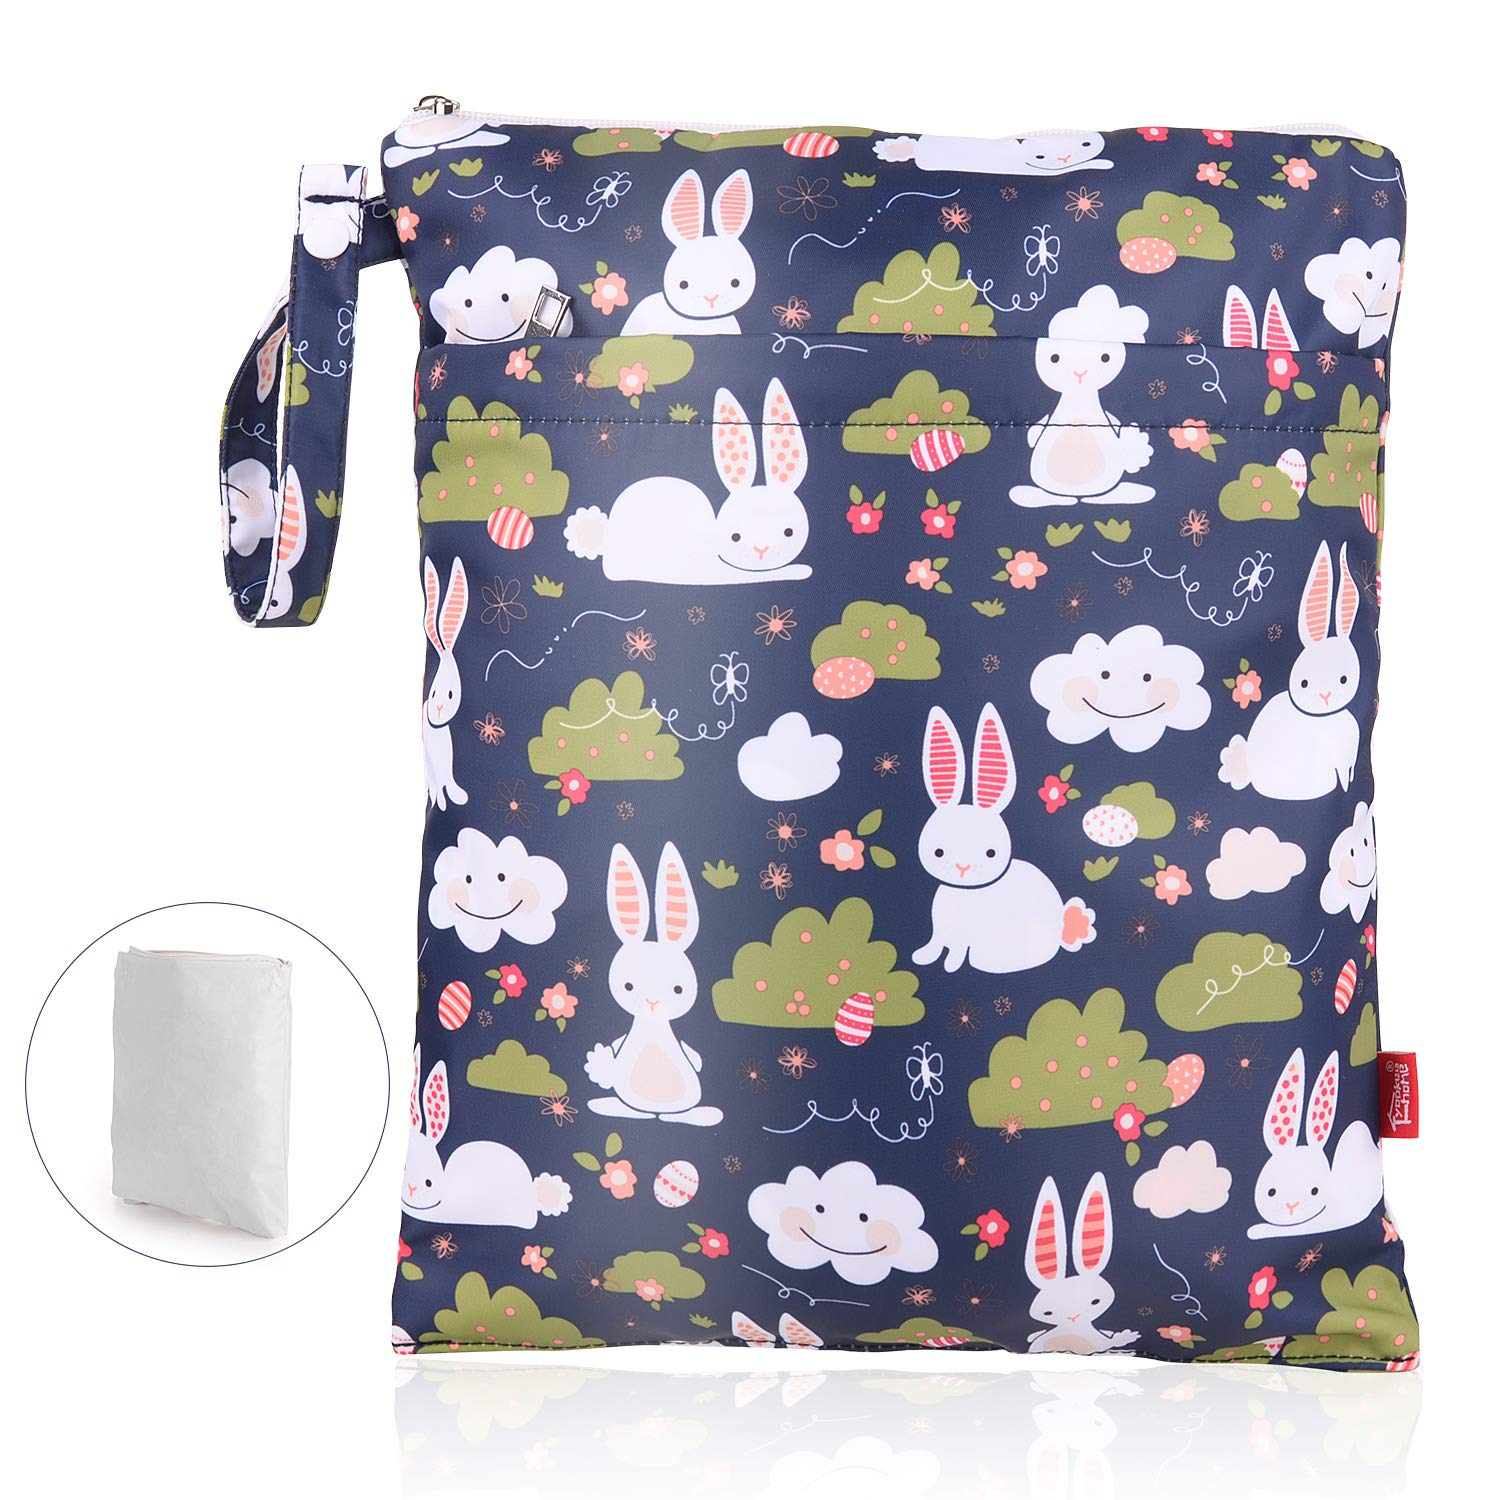 Waterproof Wet Dry Bag Double Layer Reusable Cloth Diaper Wet Bag with Waterproof Liner and Zippered Pocket for Diapers, Laundry, Swimsuits and Dirty Cloth, Rabbit